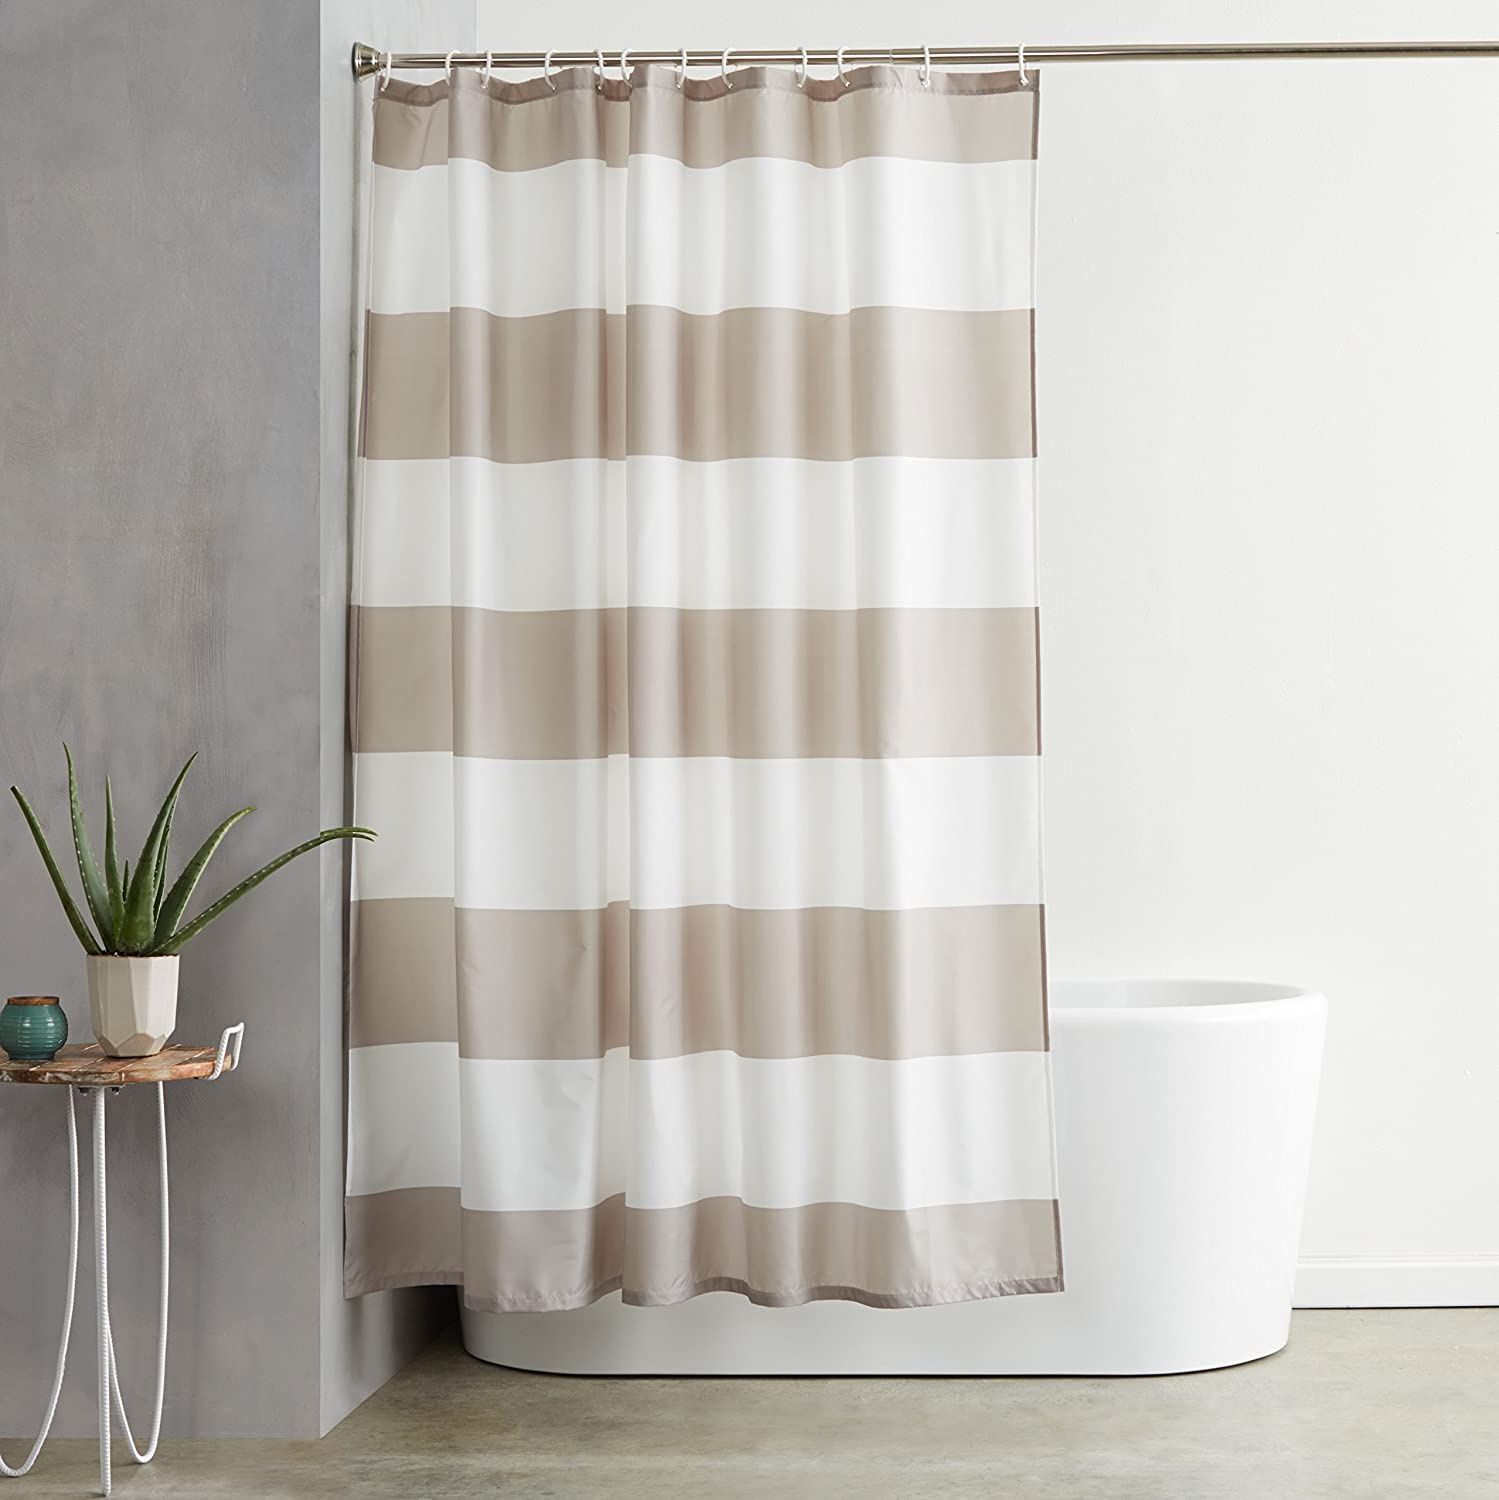 Country Bathroom Decorating Ideas Bathroom Shower Curtains Floral Design Shower Curtains